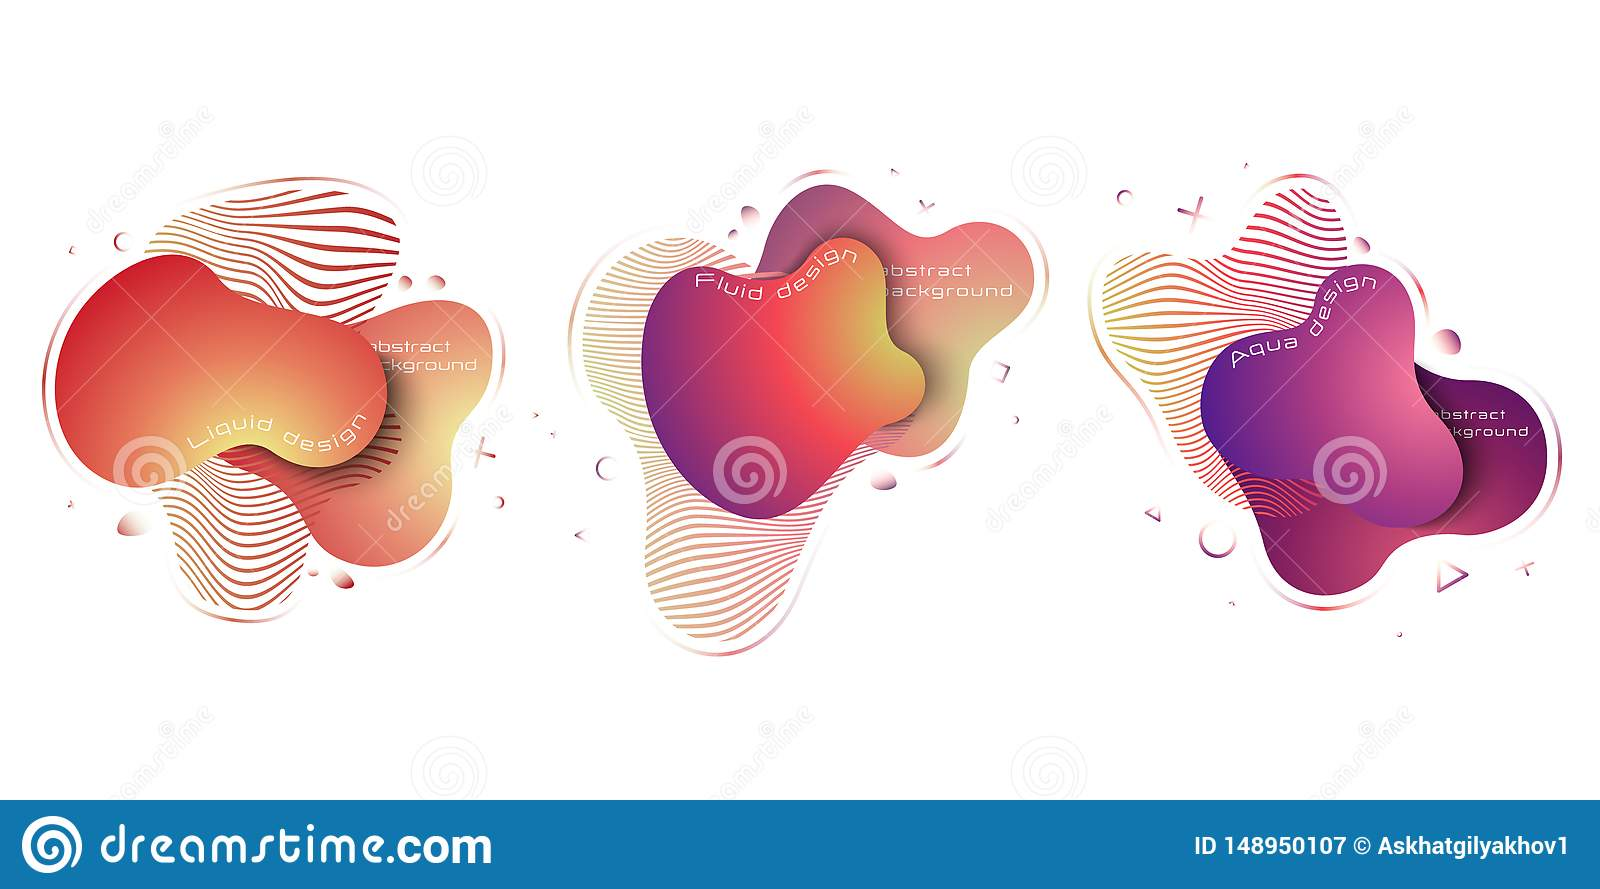 Liquid abstract elements set, modern trendy dynamical colored elements. Abstract background. EPS 10, vector